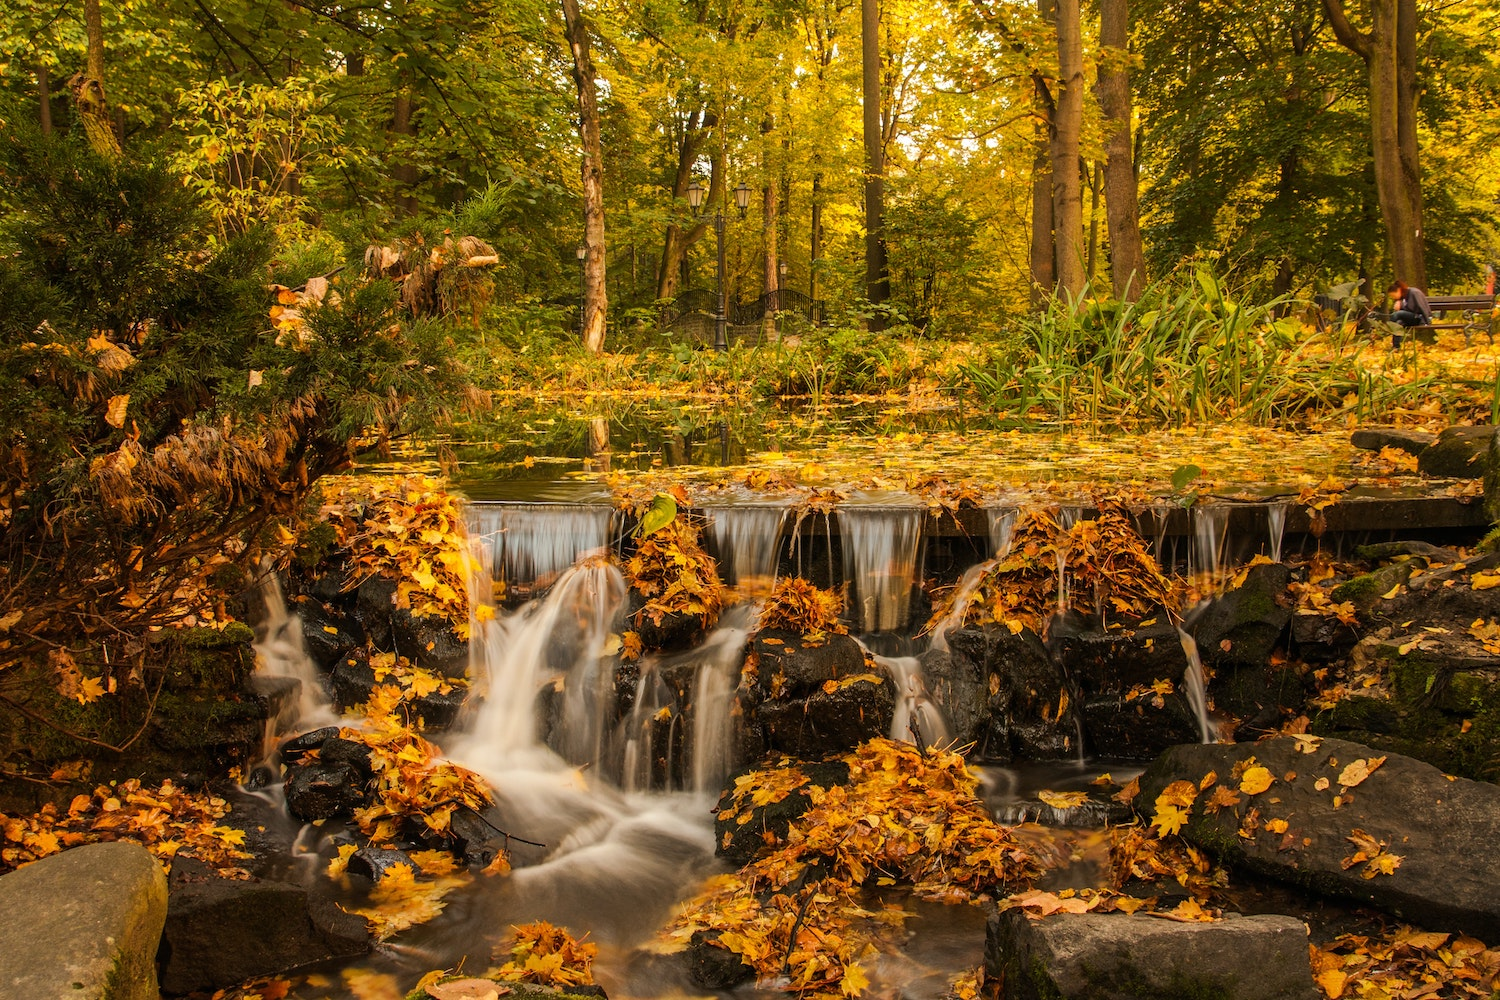 Autumn colours with a stream Dawid Zawiła